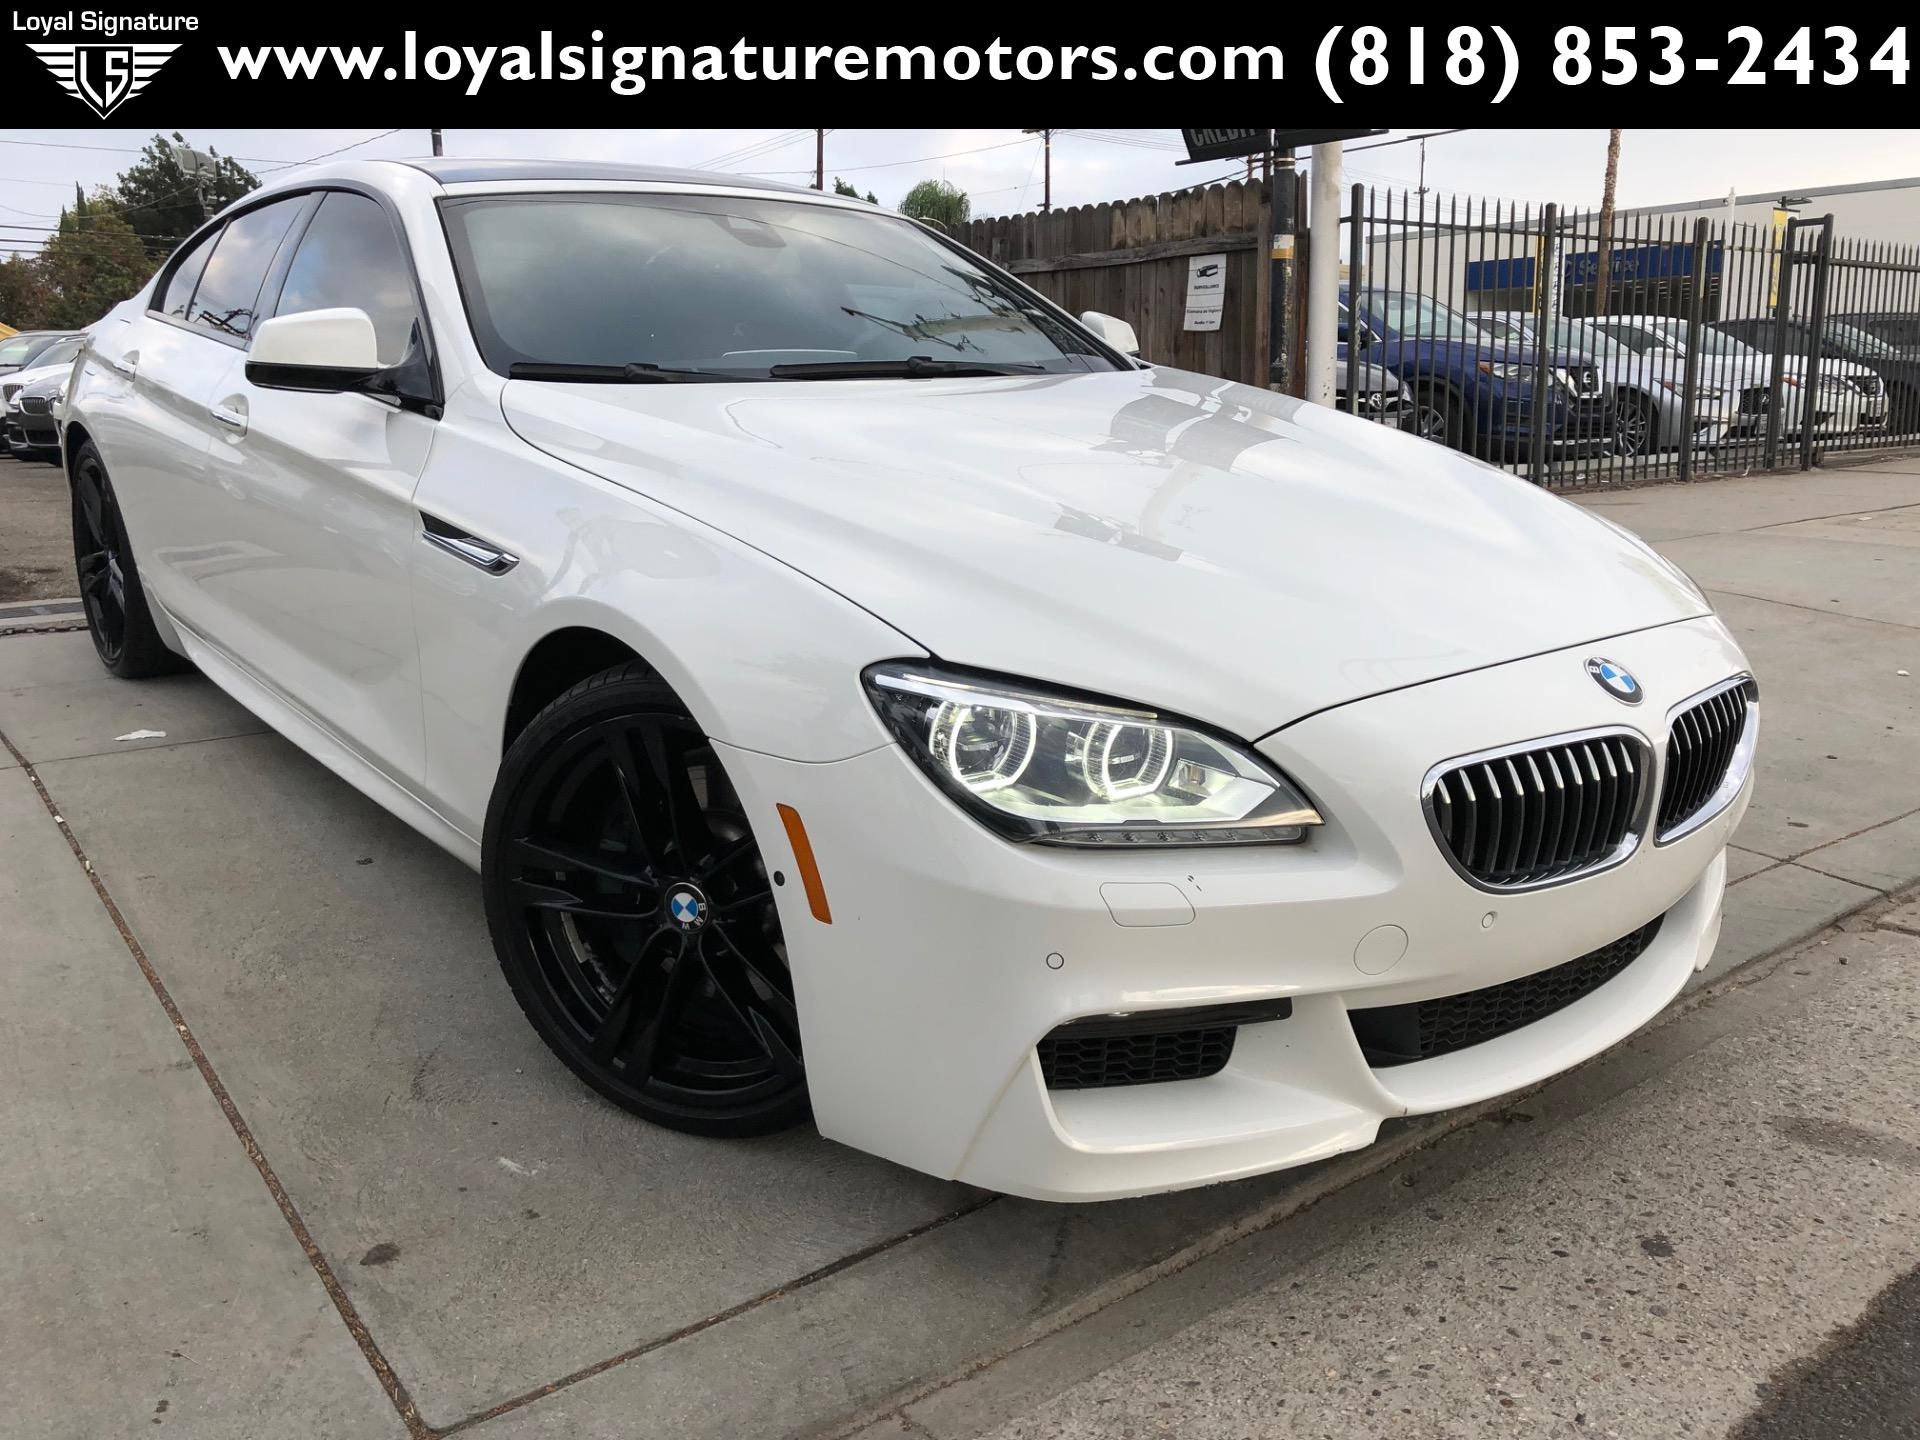 Used 2015 Bmw 6 Series 640i Gran Coupe M Sport Package For Sale 31 995 Loyal Signature Motors Inc Stock 2018158